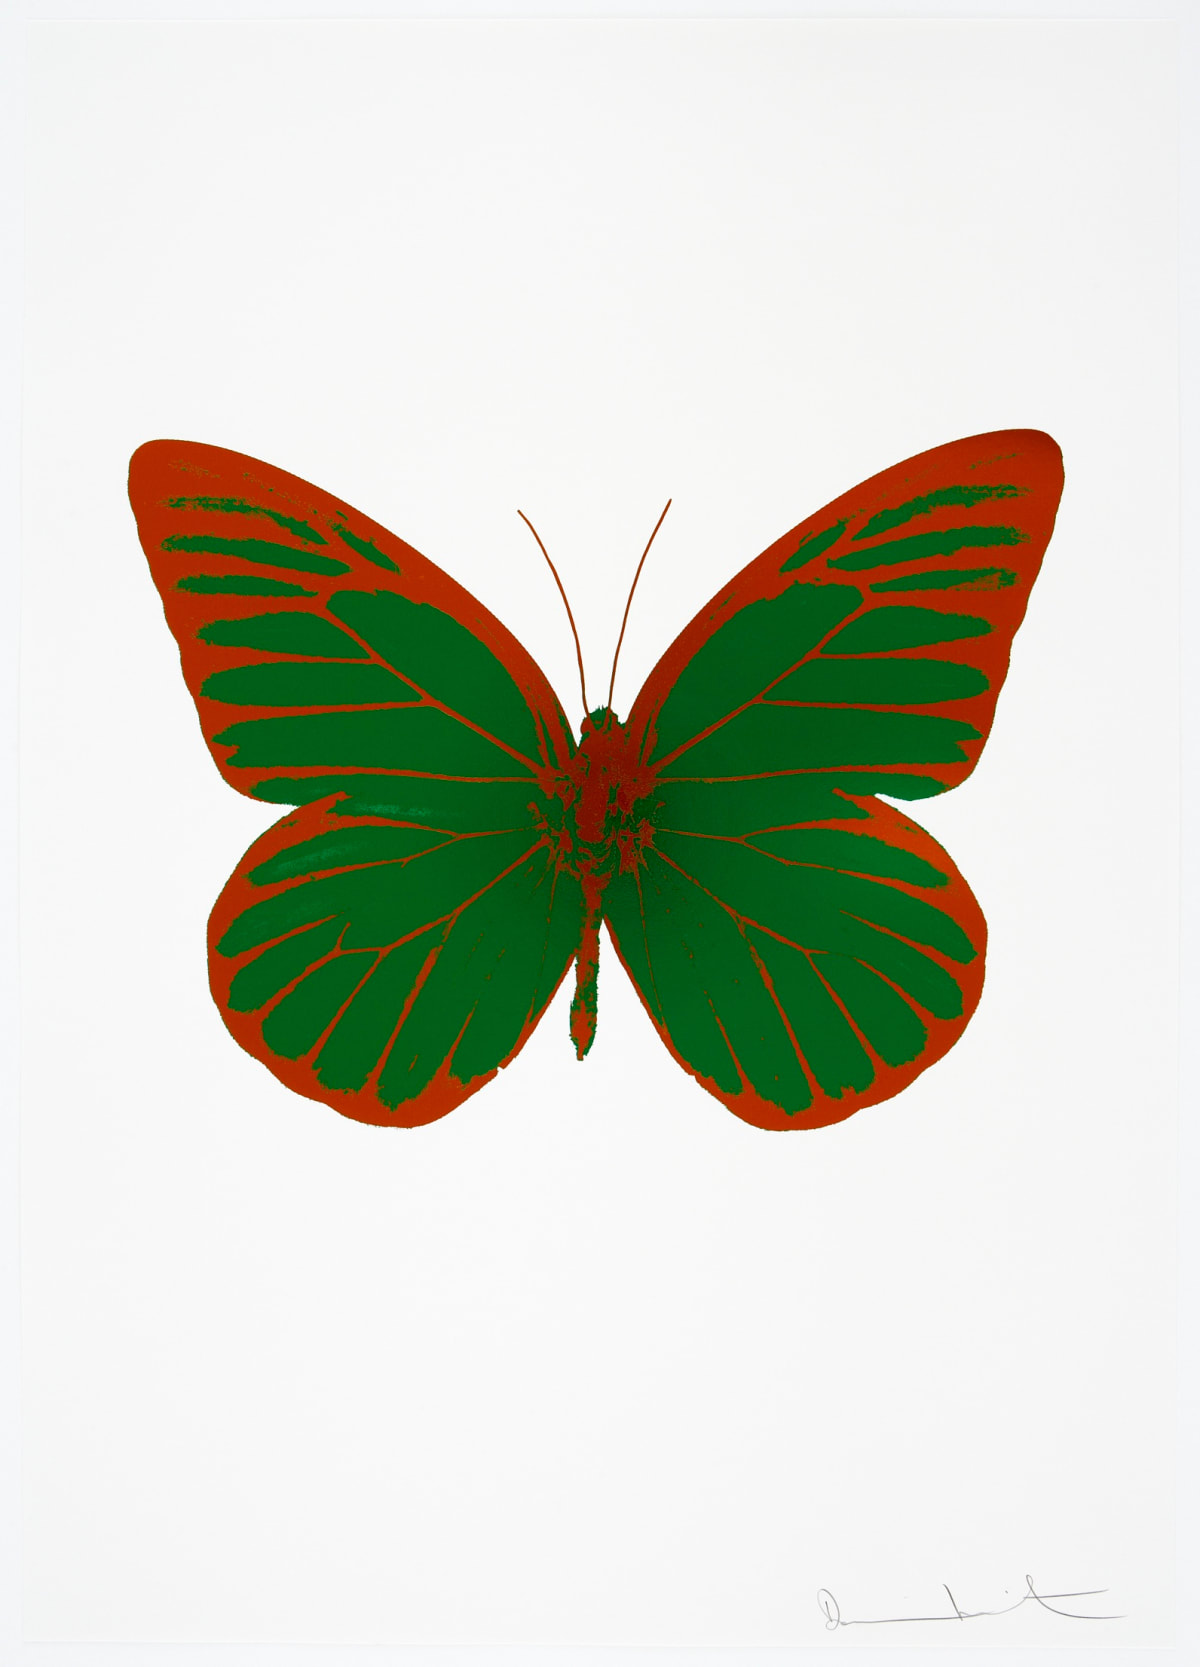 Damien Hirst The Souls I - Emerald Green/Prairie Copper, 2010 2 colour foil block on 300gsm Arches 88 archival paper. Signed and numbered. Published by Paul Stolper and Other Criteria 72 x 51cm OC7796 / 659-59 Edition of 15